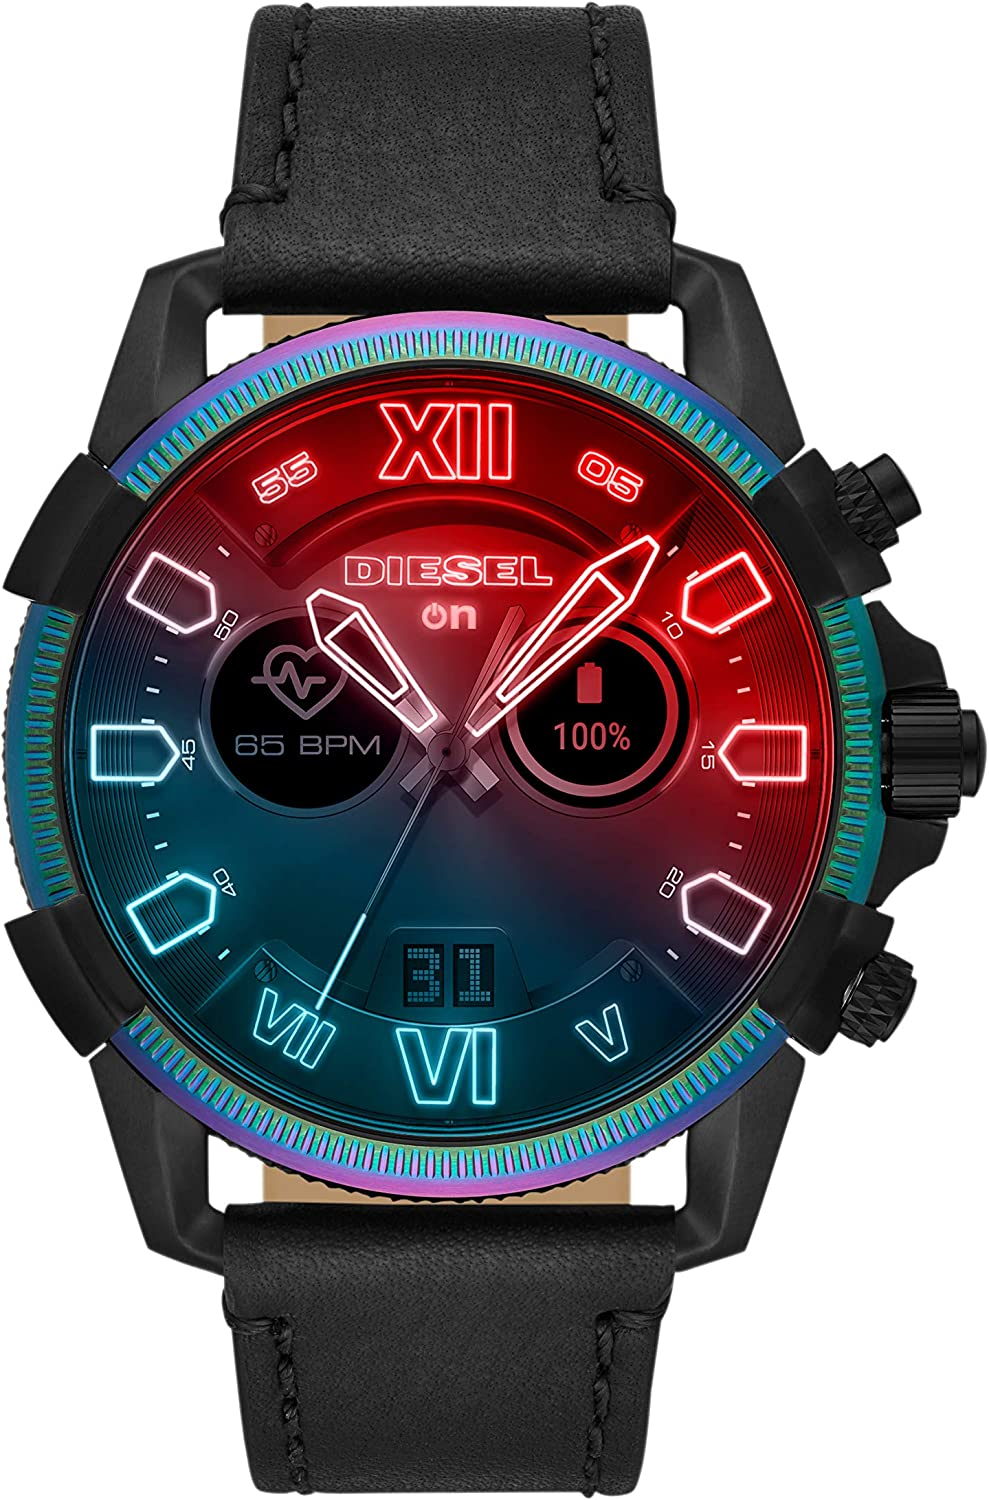 Diesel On Mens Full Guard 2.5 Touchscreen Stainless Steel and Leather Smartwatch, Black and Multicolor Iridescent crystal-DZT2013